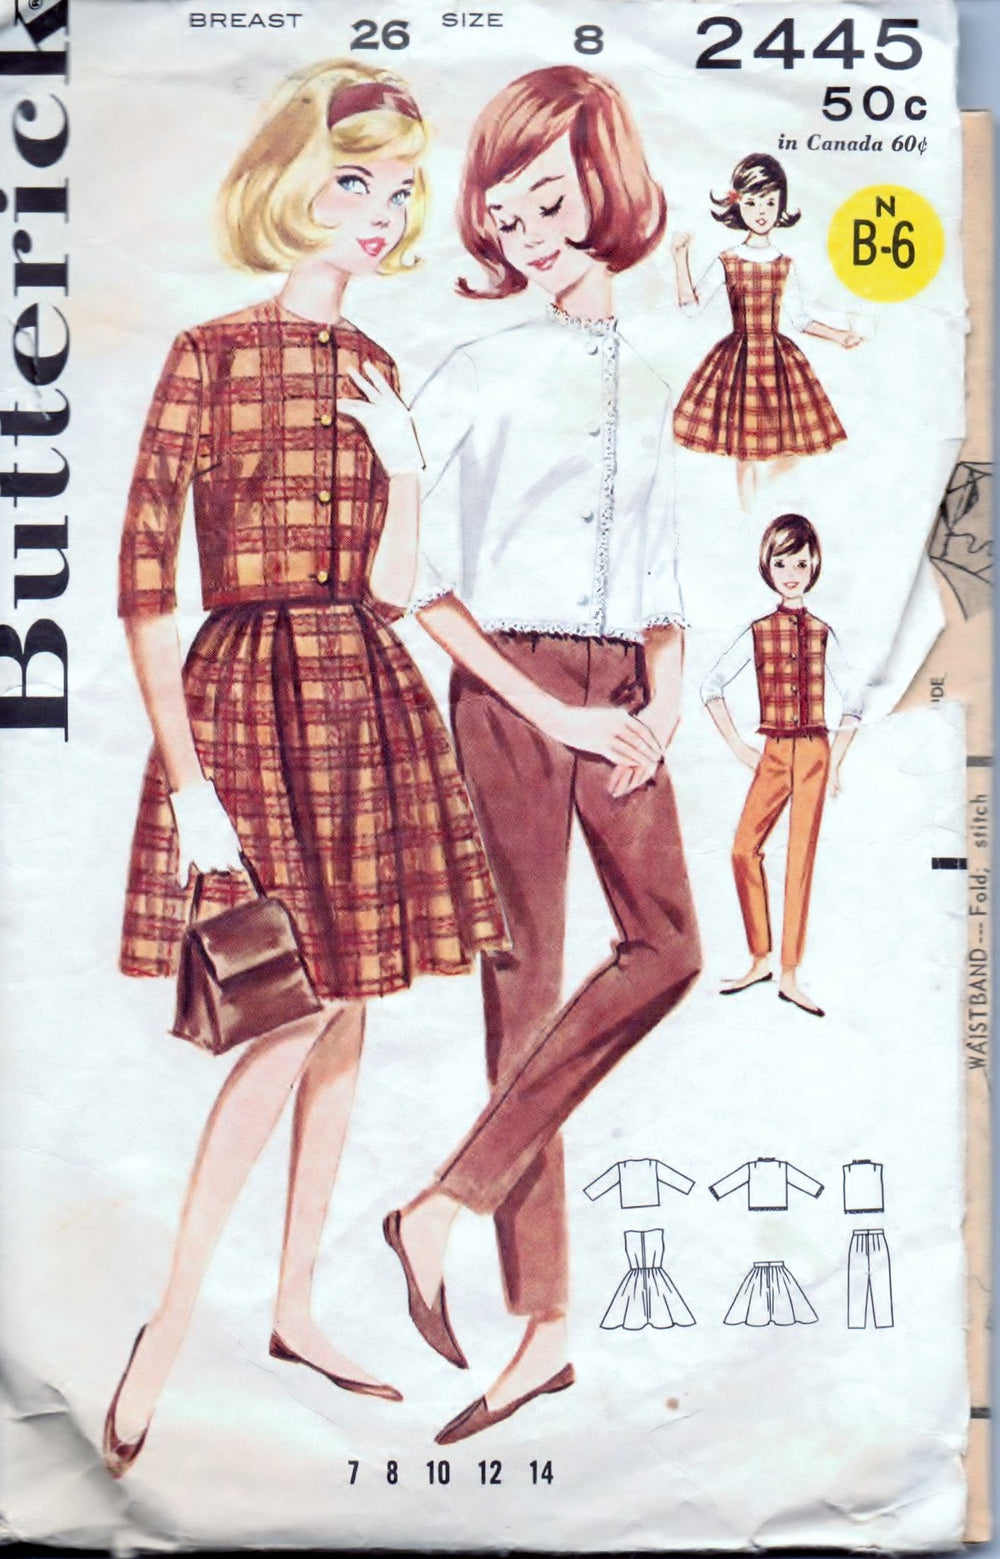 Butterick 2445 GIrls' Wardrobe Jumper Dress Skirt Pants Jacket Vintage 1960's Sewing Pattern - VintageStitching - Vintage Sewing Patterns